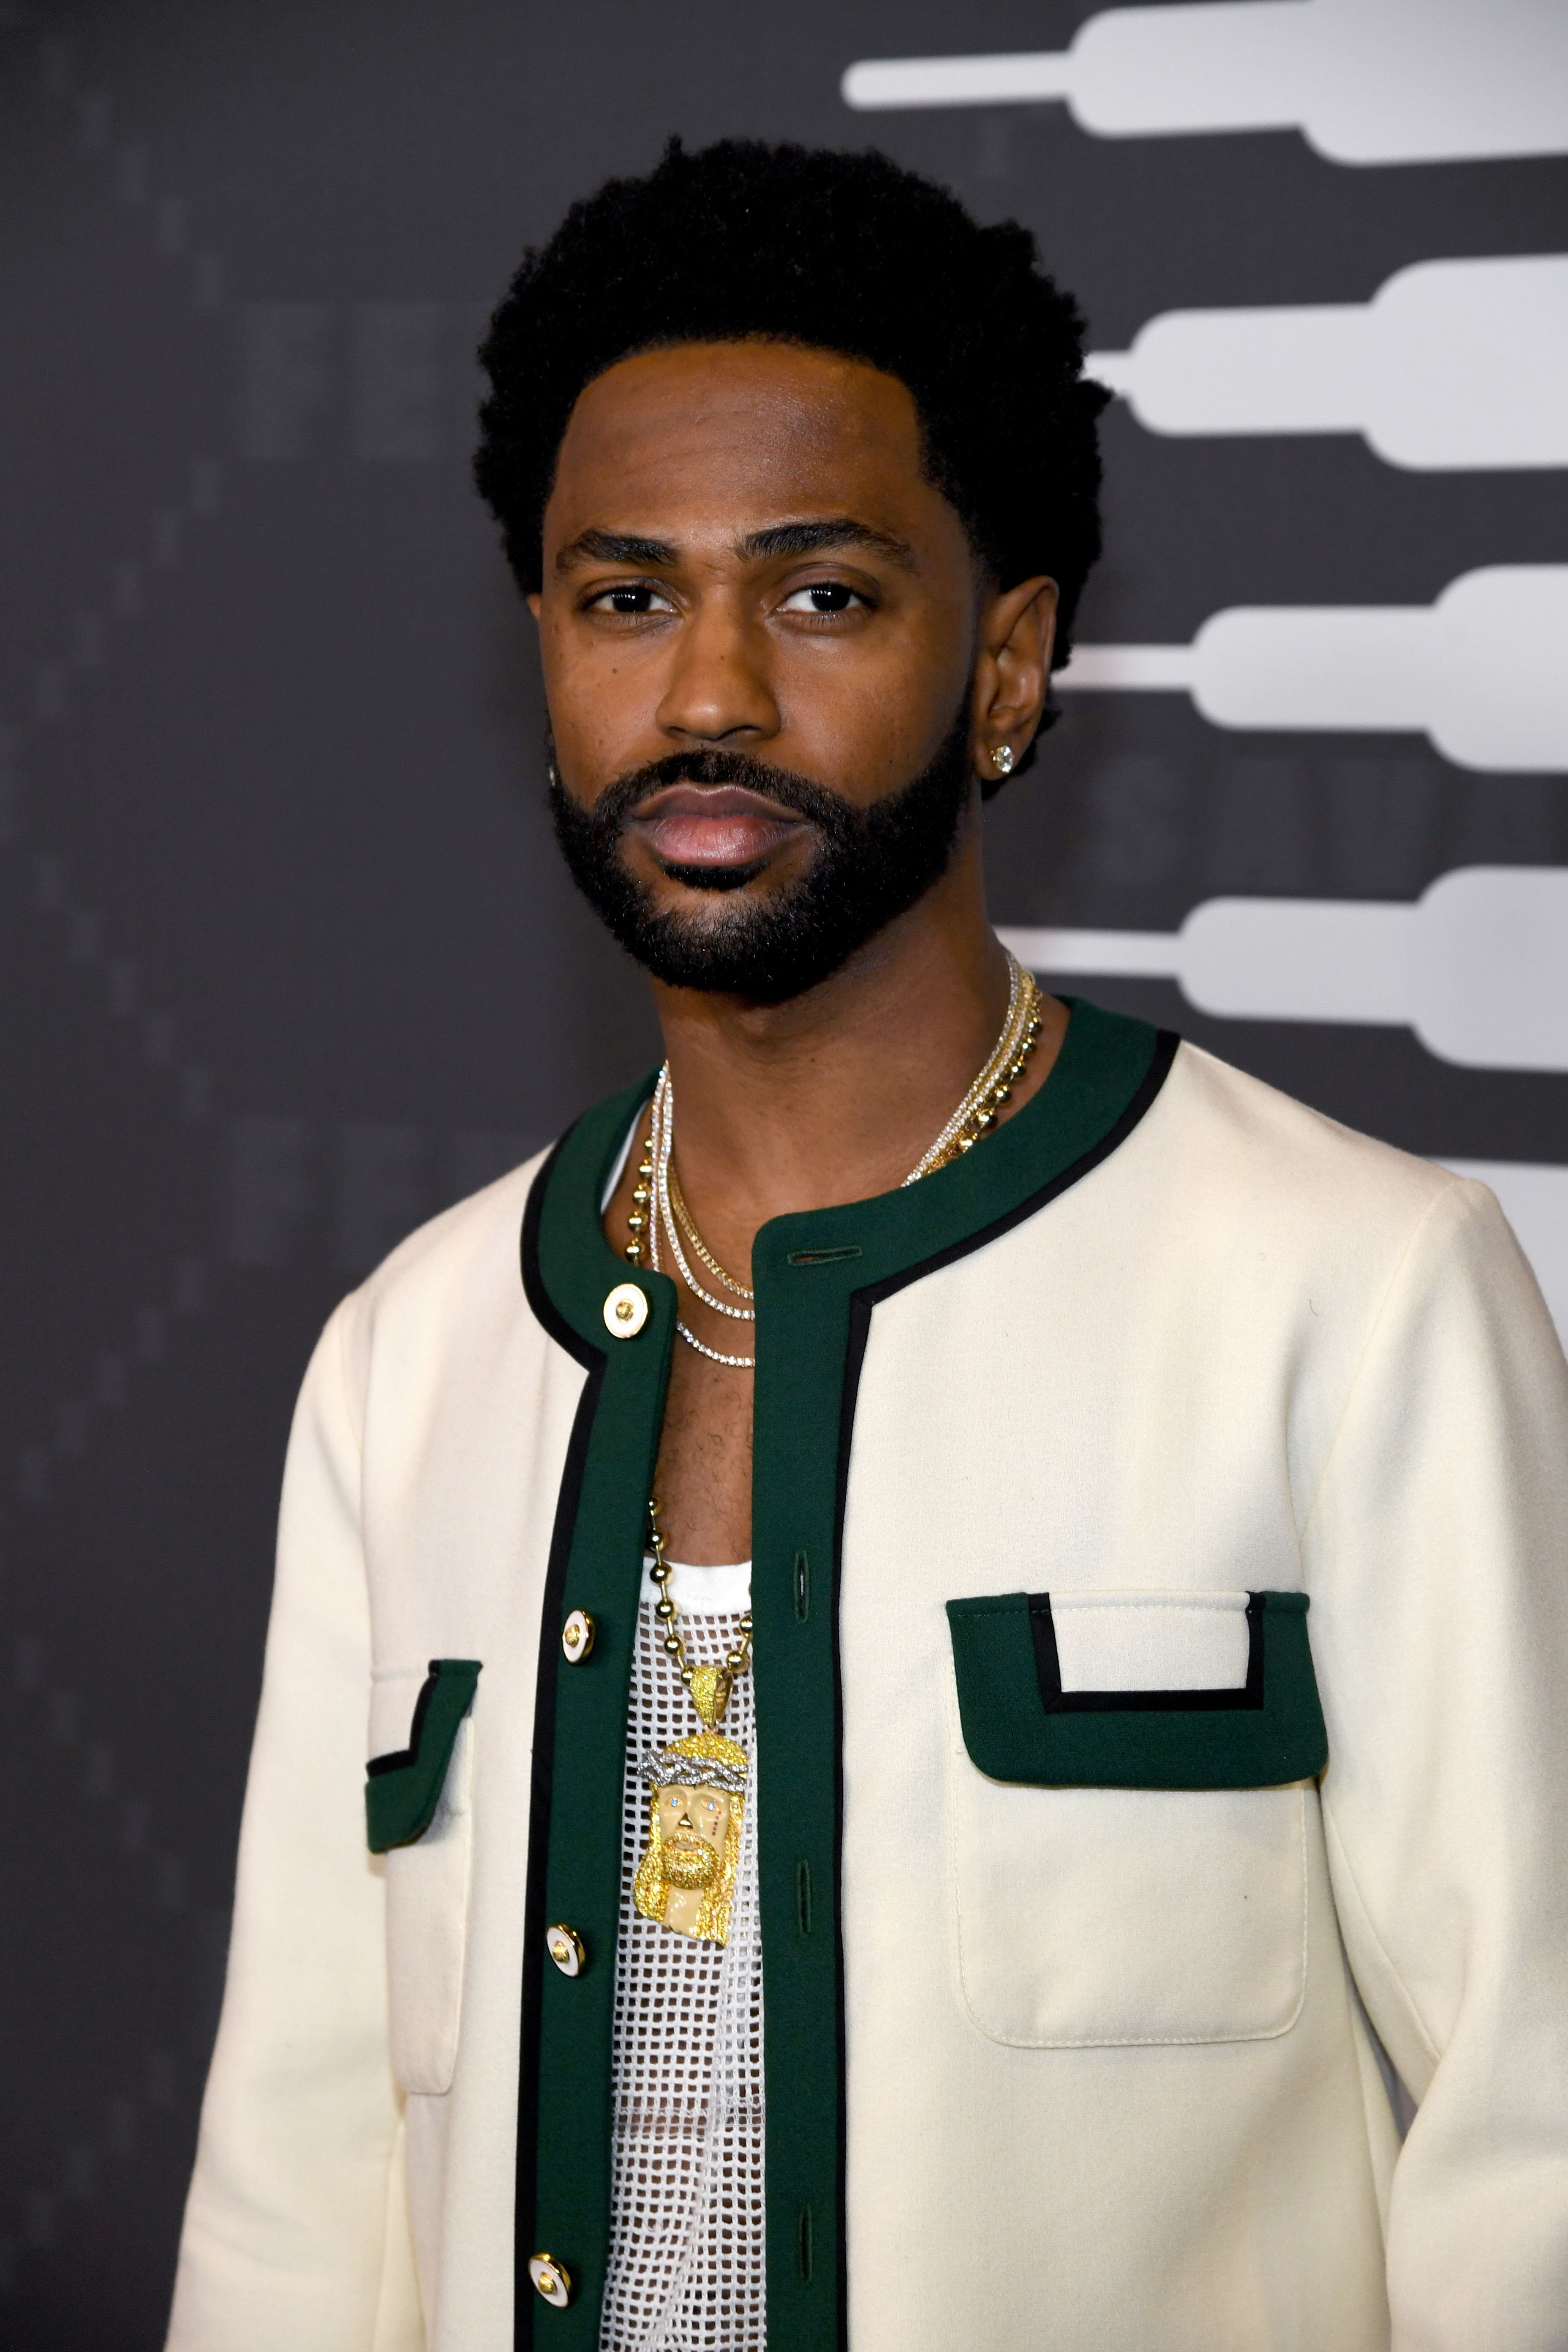 Big Sean at the Savage X Fenty Show Presented By Amazon Prime Video - Arrivals on September 10, 2019 | Photo: Getty Images